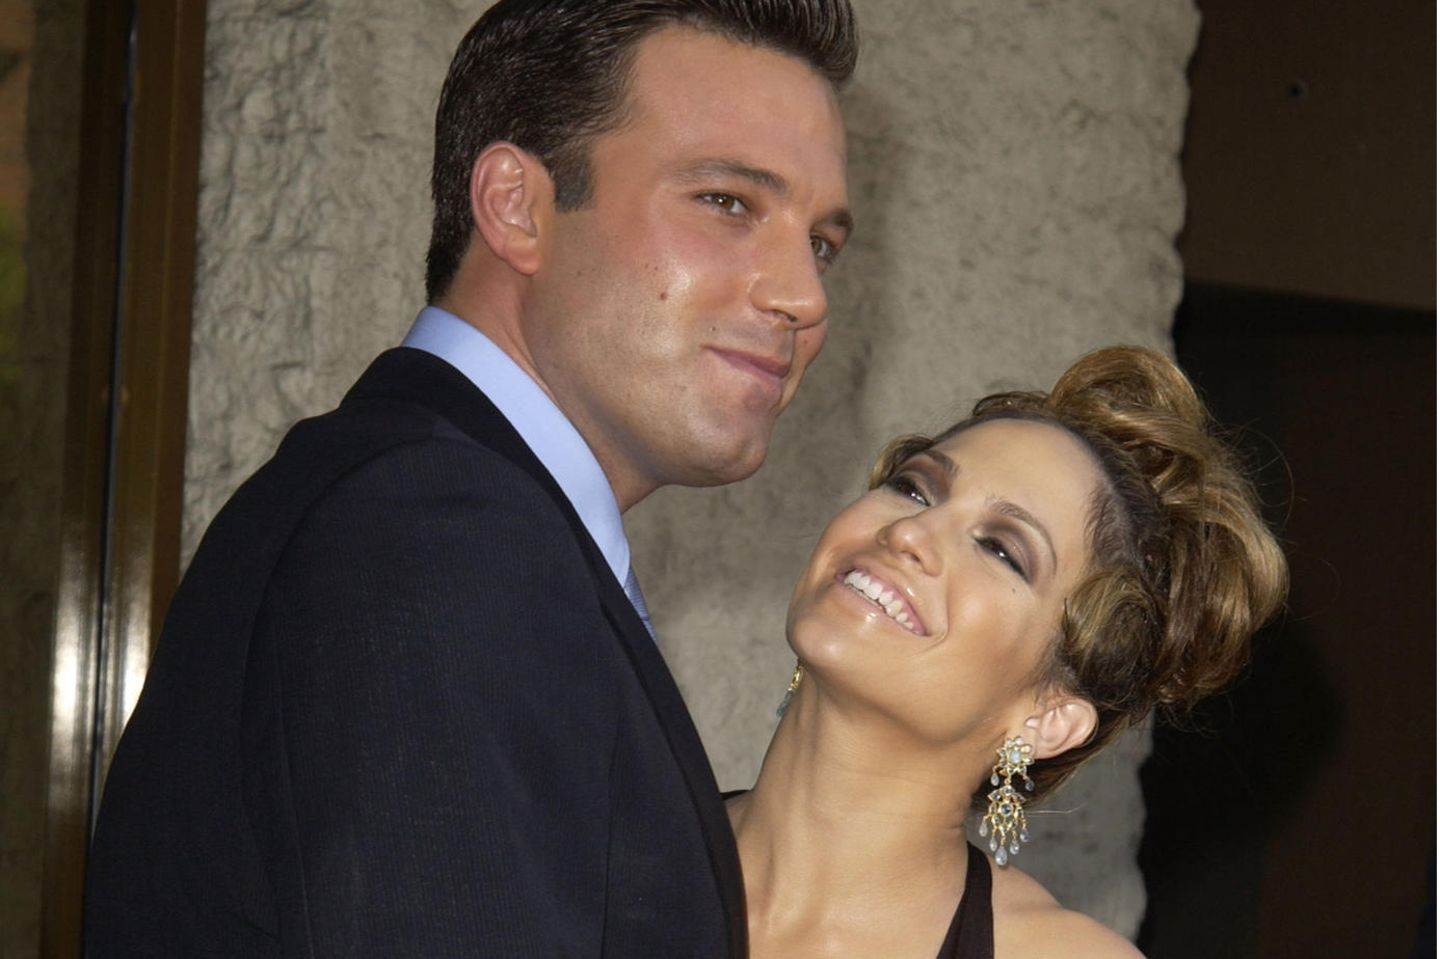 Ben Affleck and Jennifer Lopez are here in 2003.